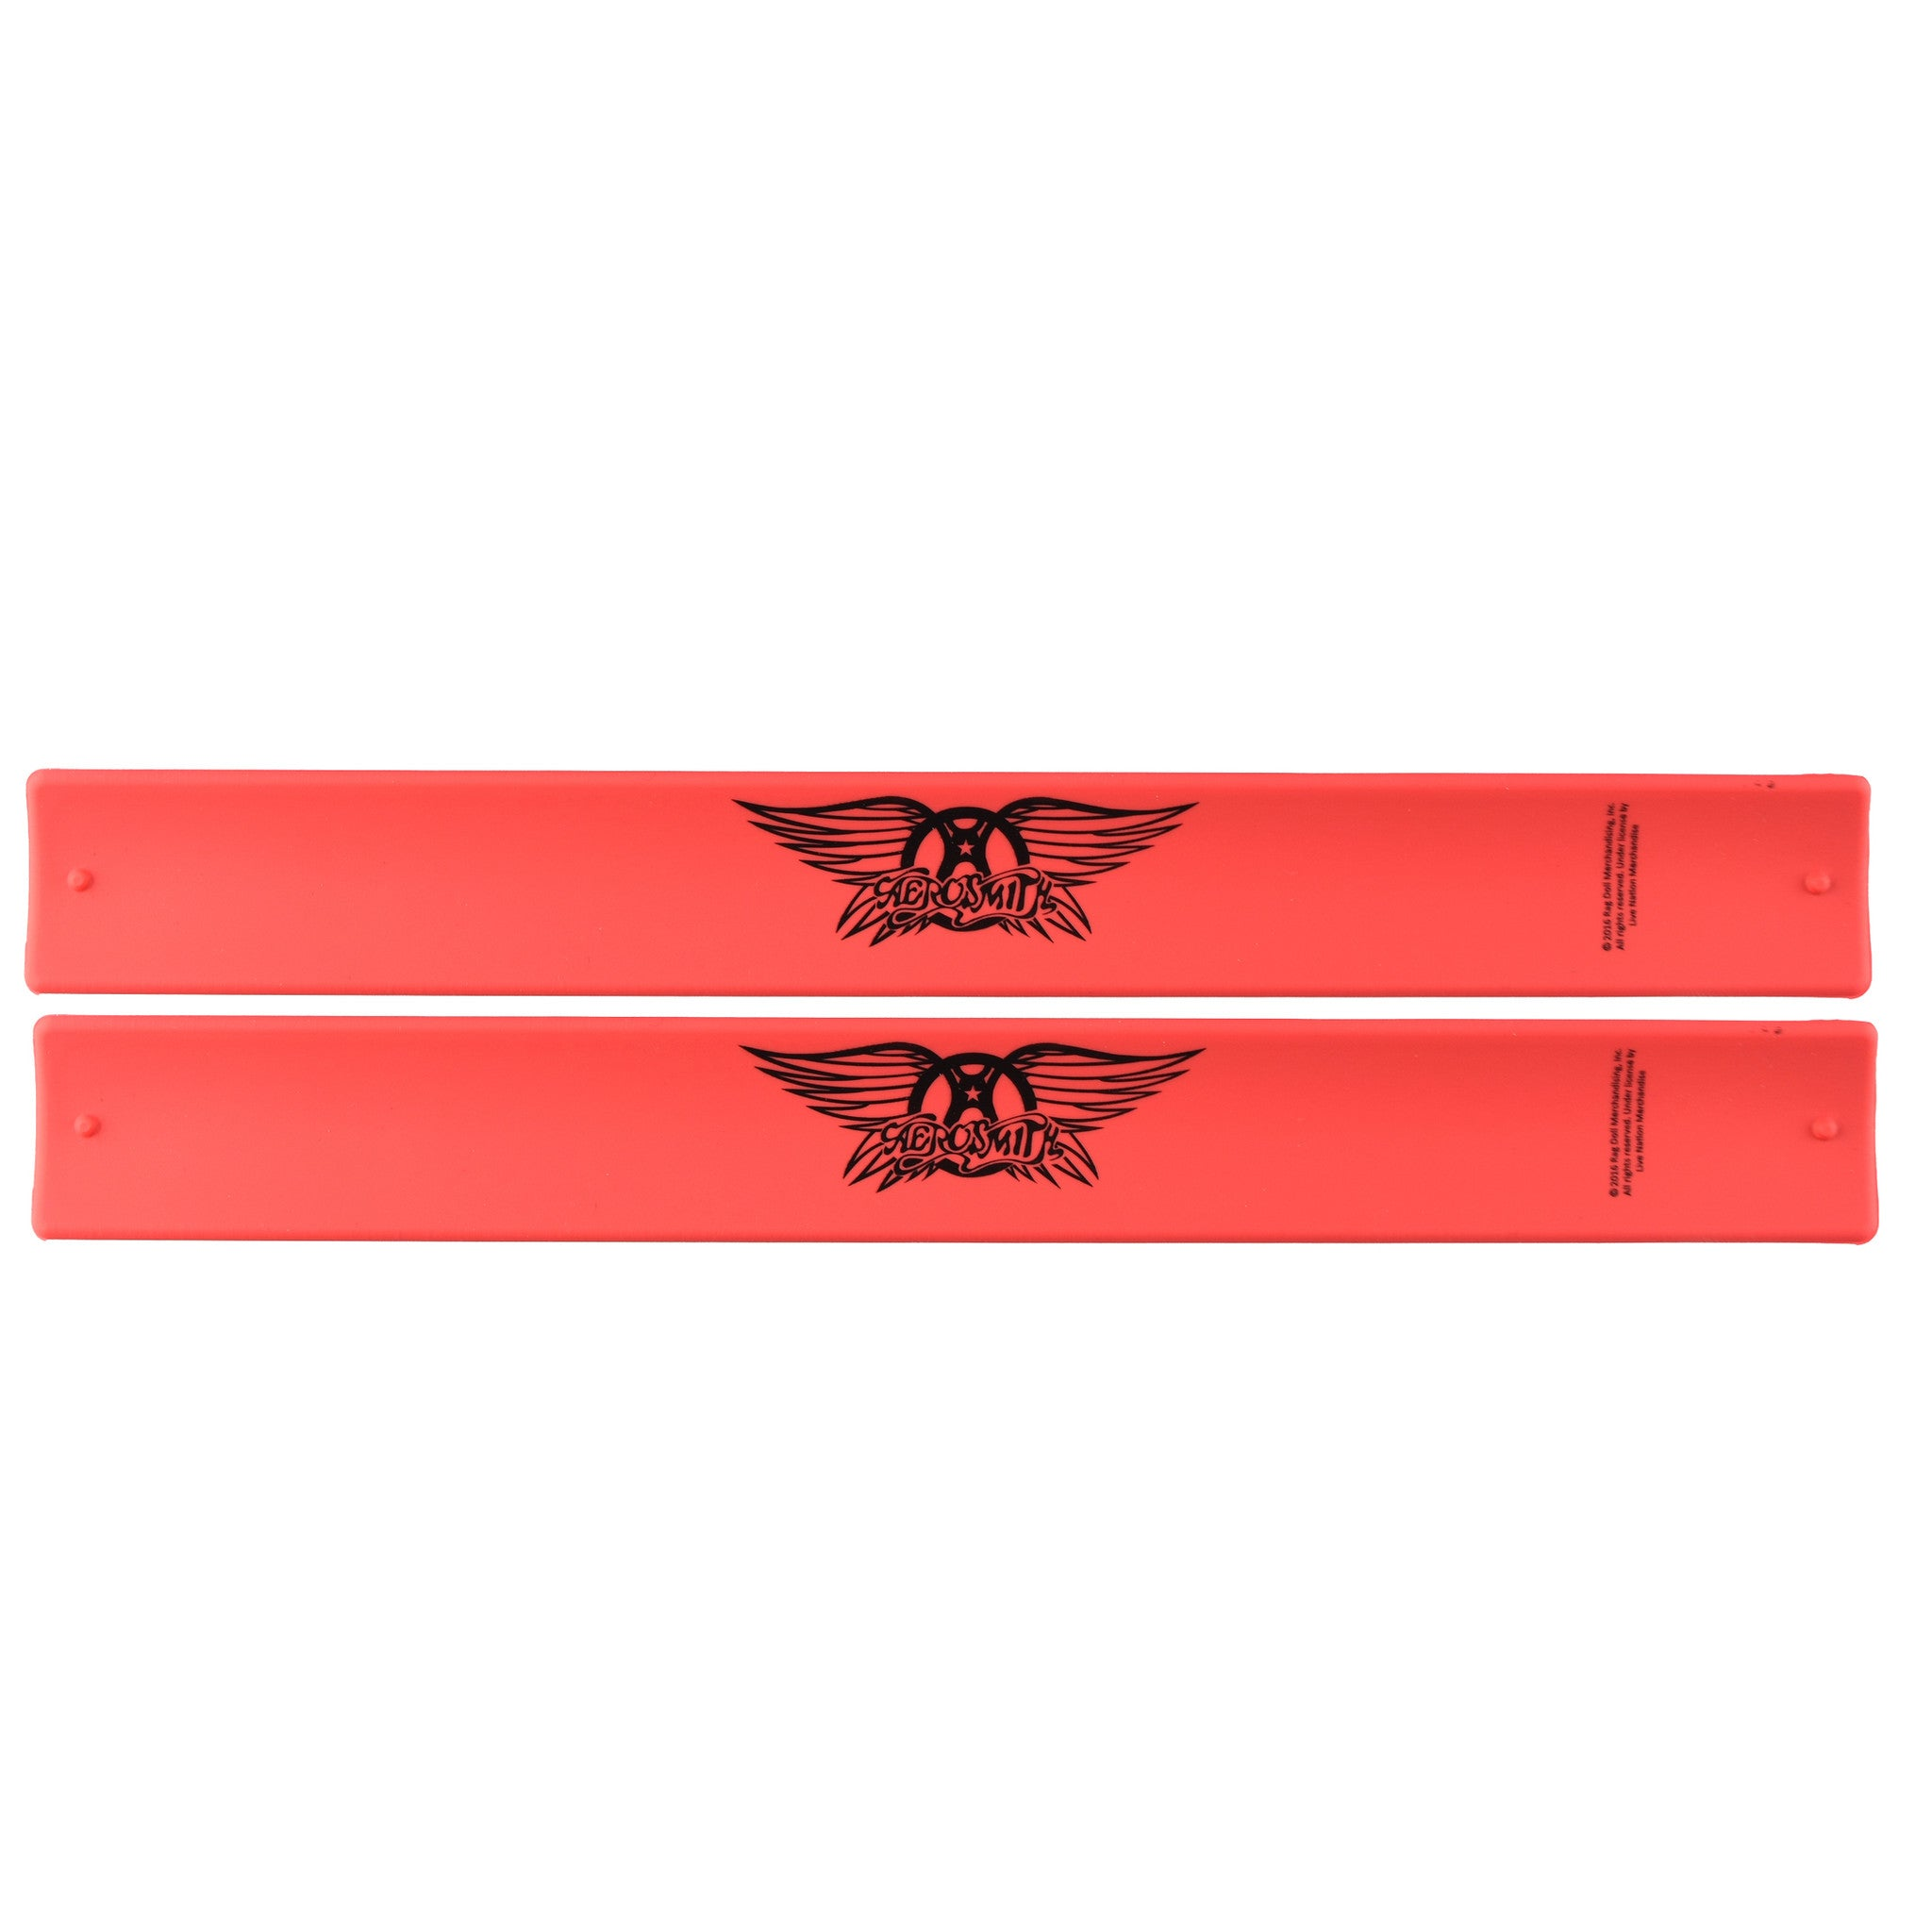 Aerosmith® Logo Slap Bands 2 Pack Red w/Black Logo